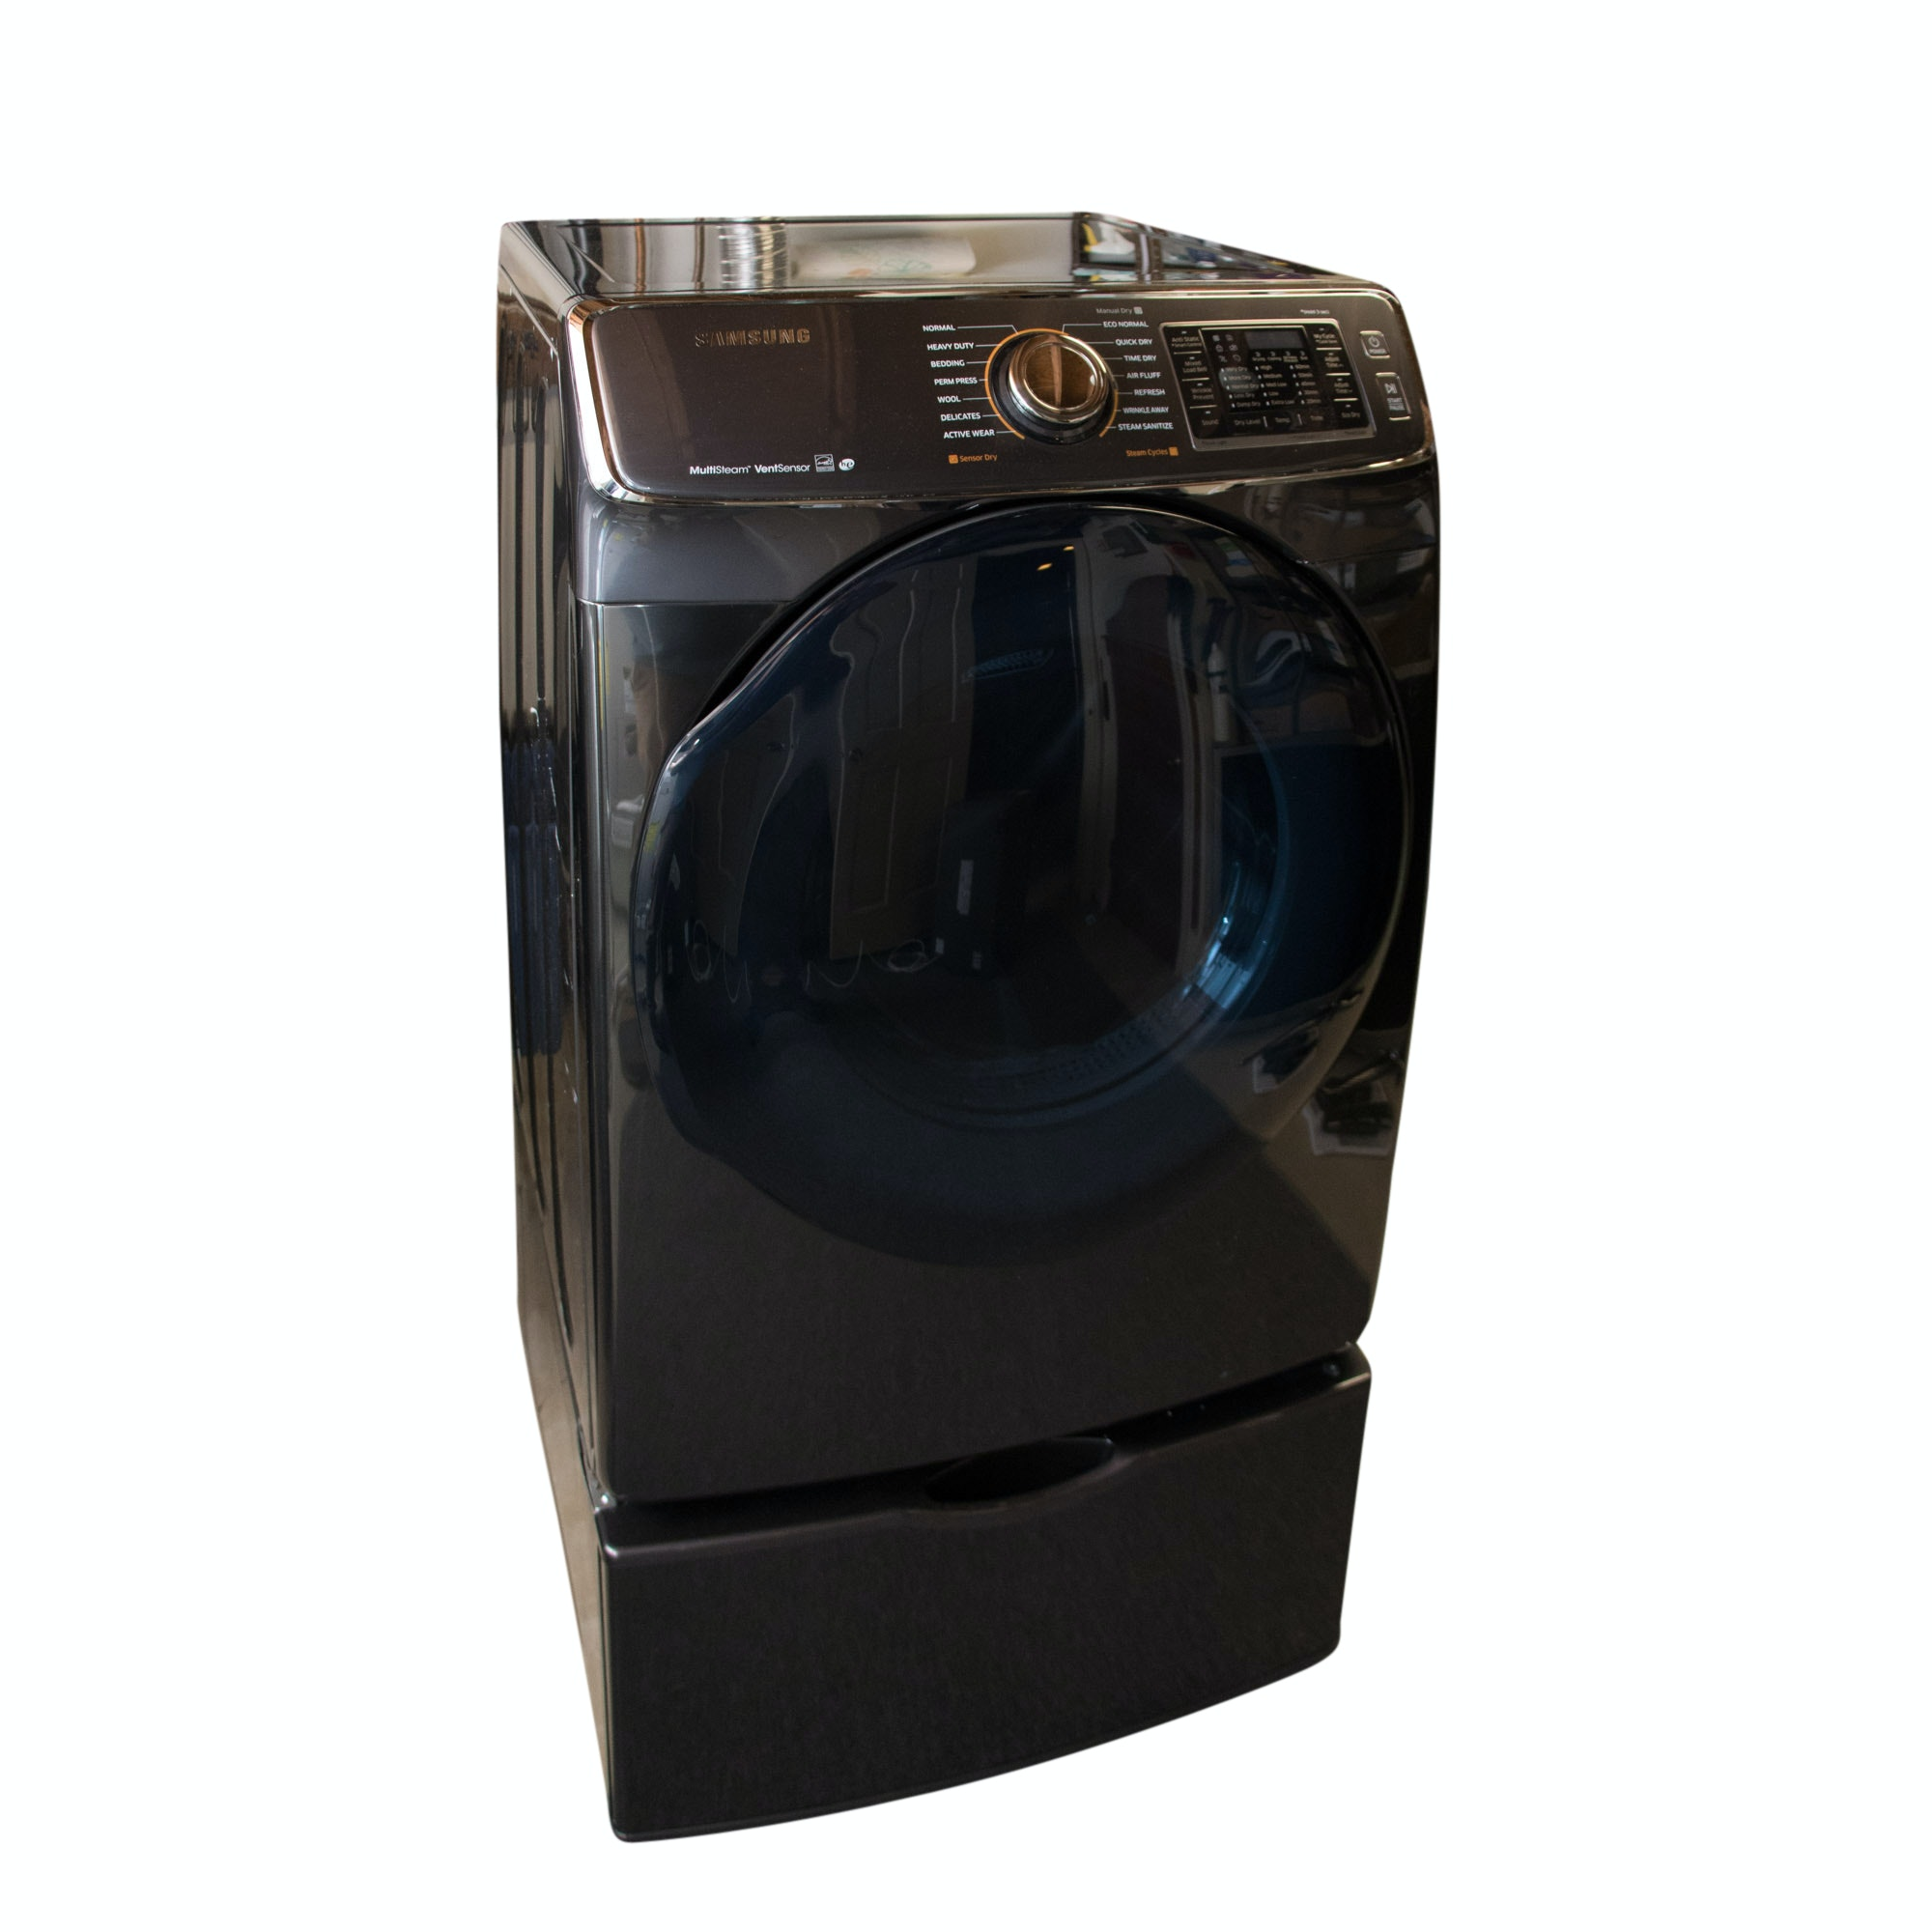 Samsung Black Stainless Electric Dryer